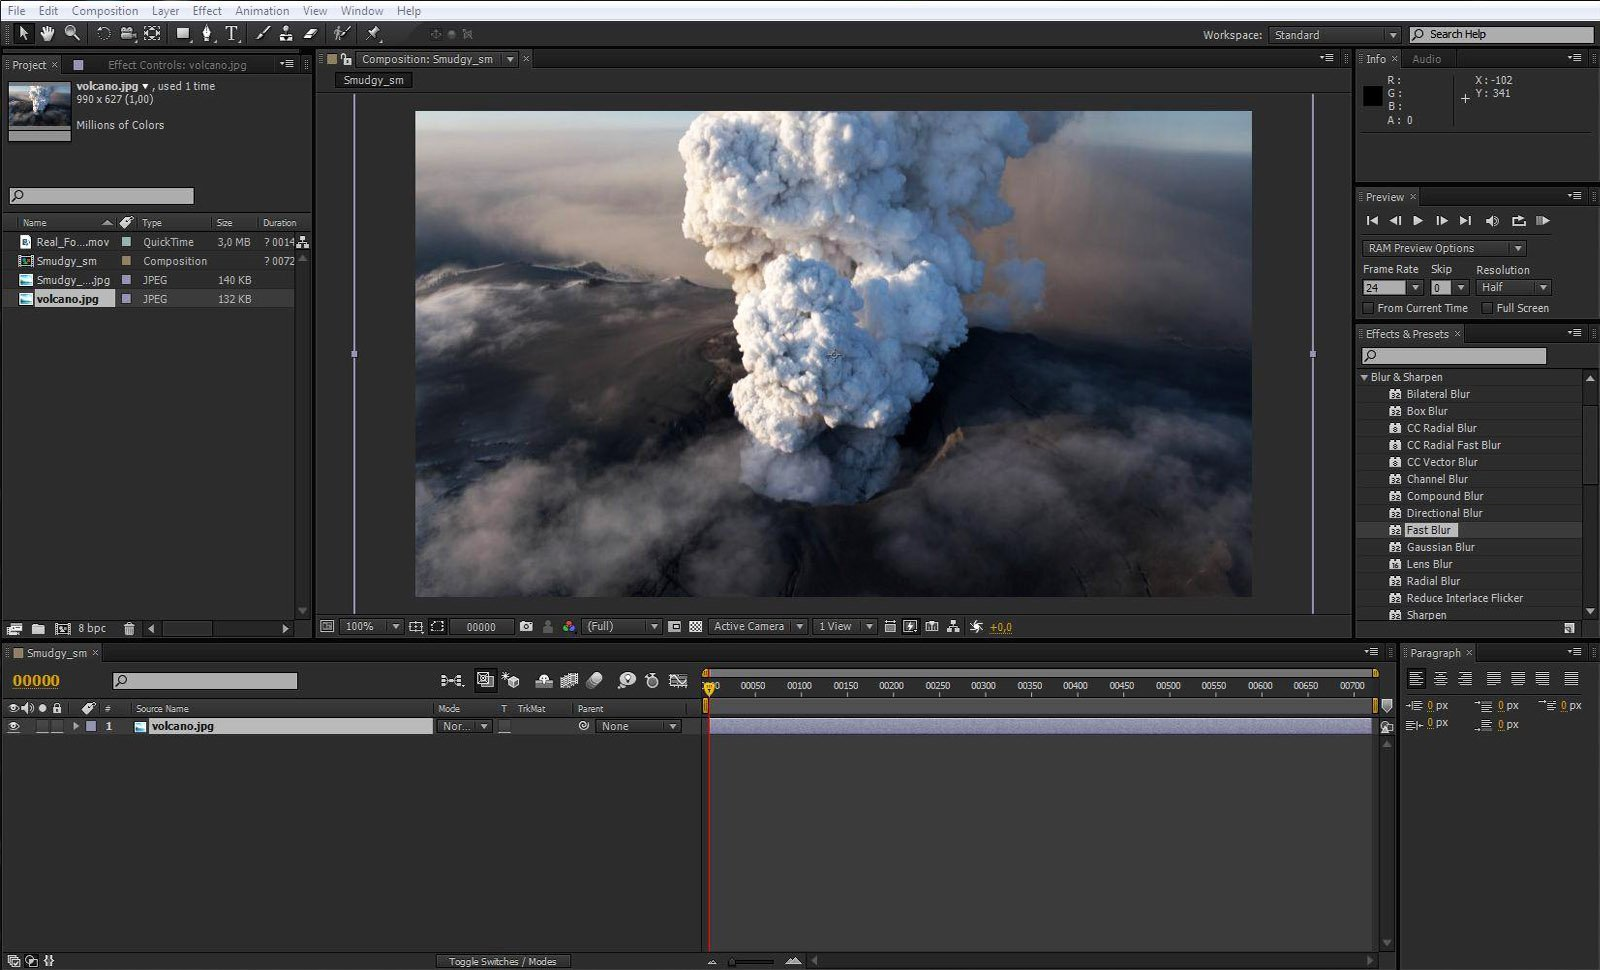 after effects Adobe after effects 861k likes after effects cc 2015 is here   1mq3xos see what's new for all adobe creative cloud tools.